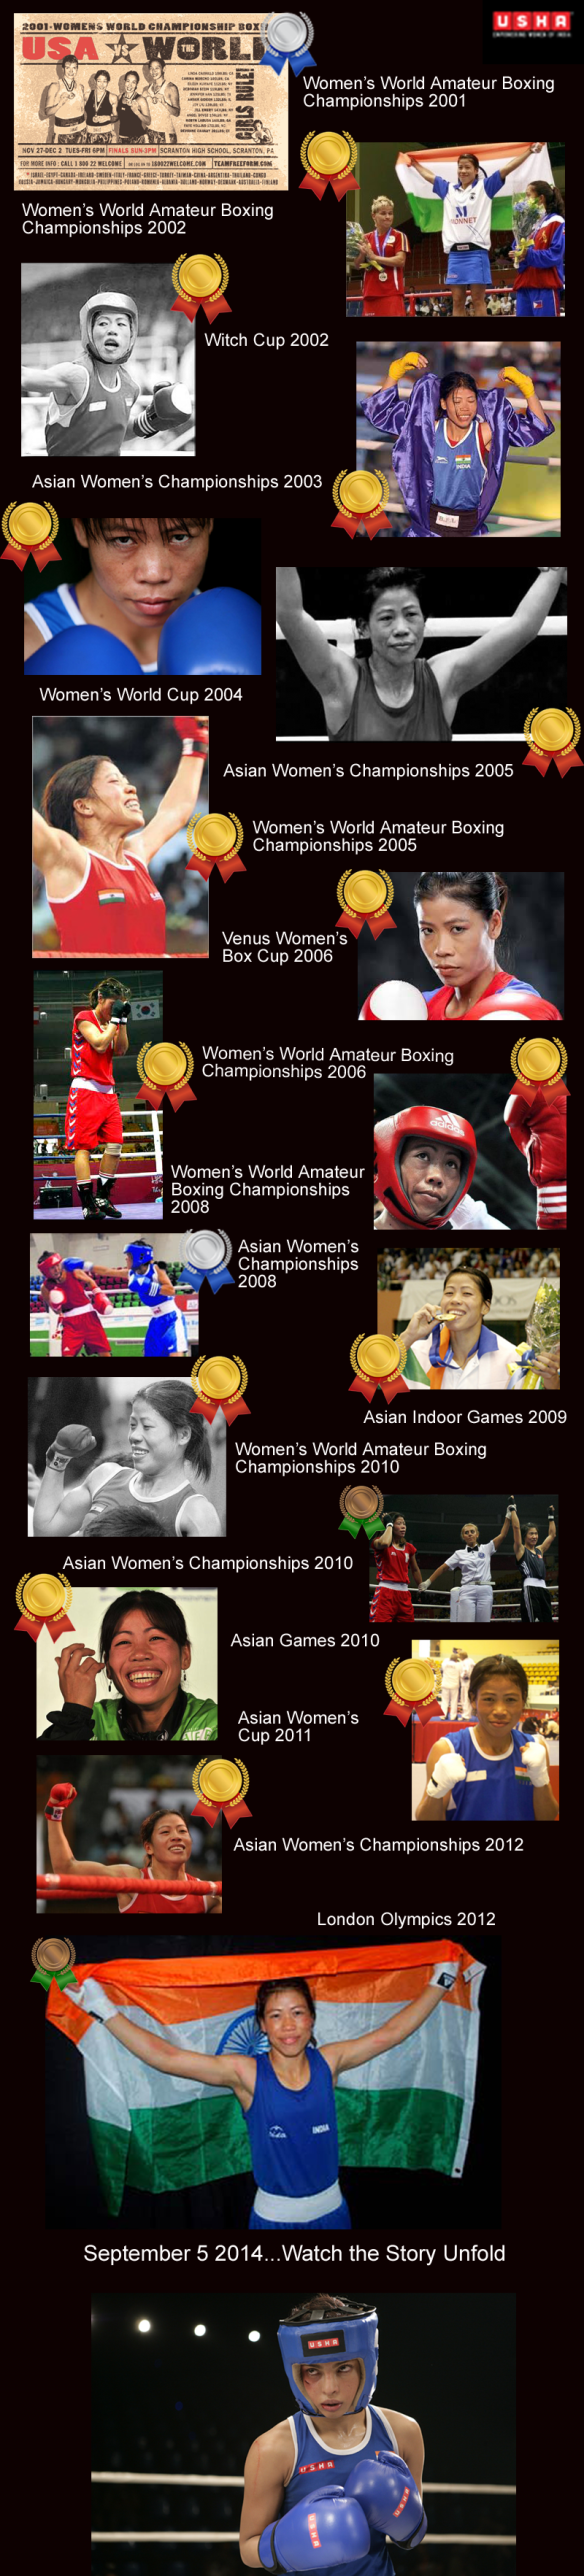 The Story of Mary Kom infographic